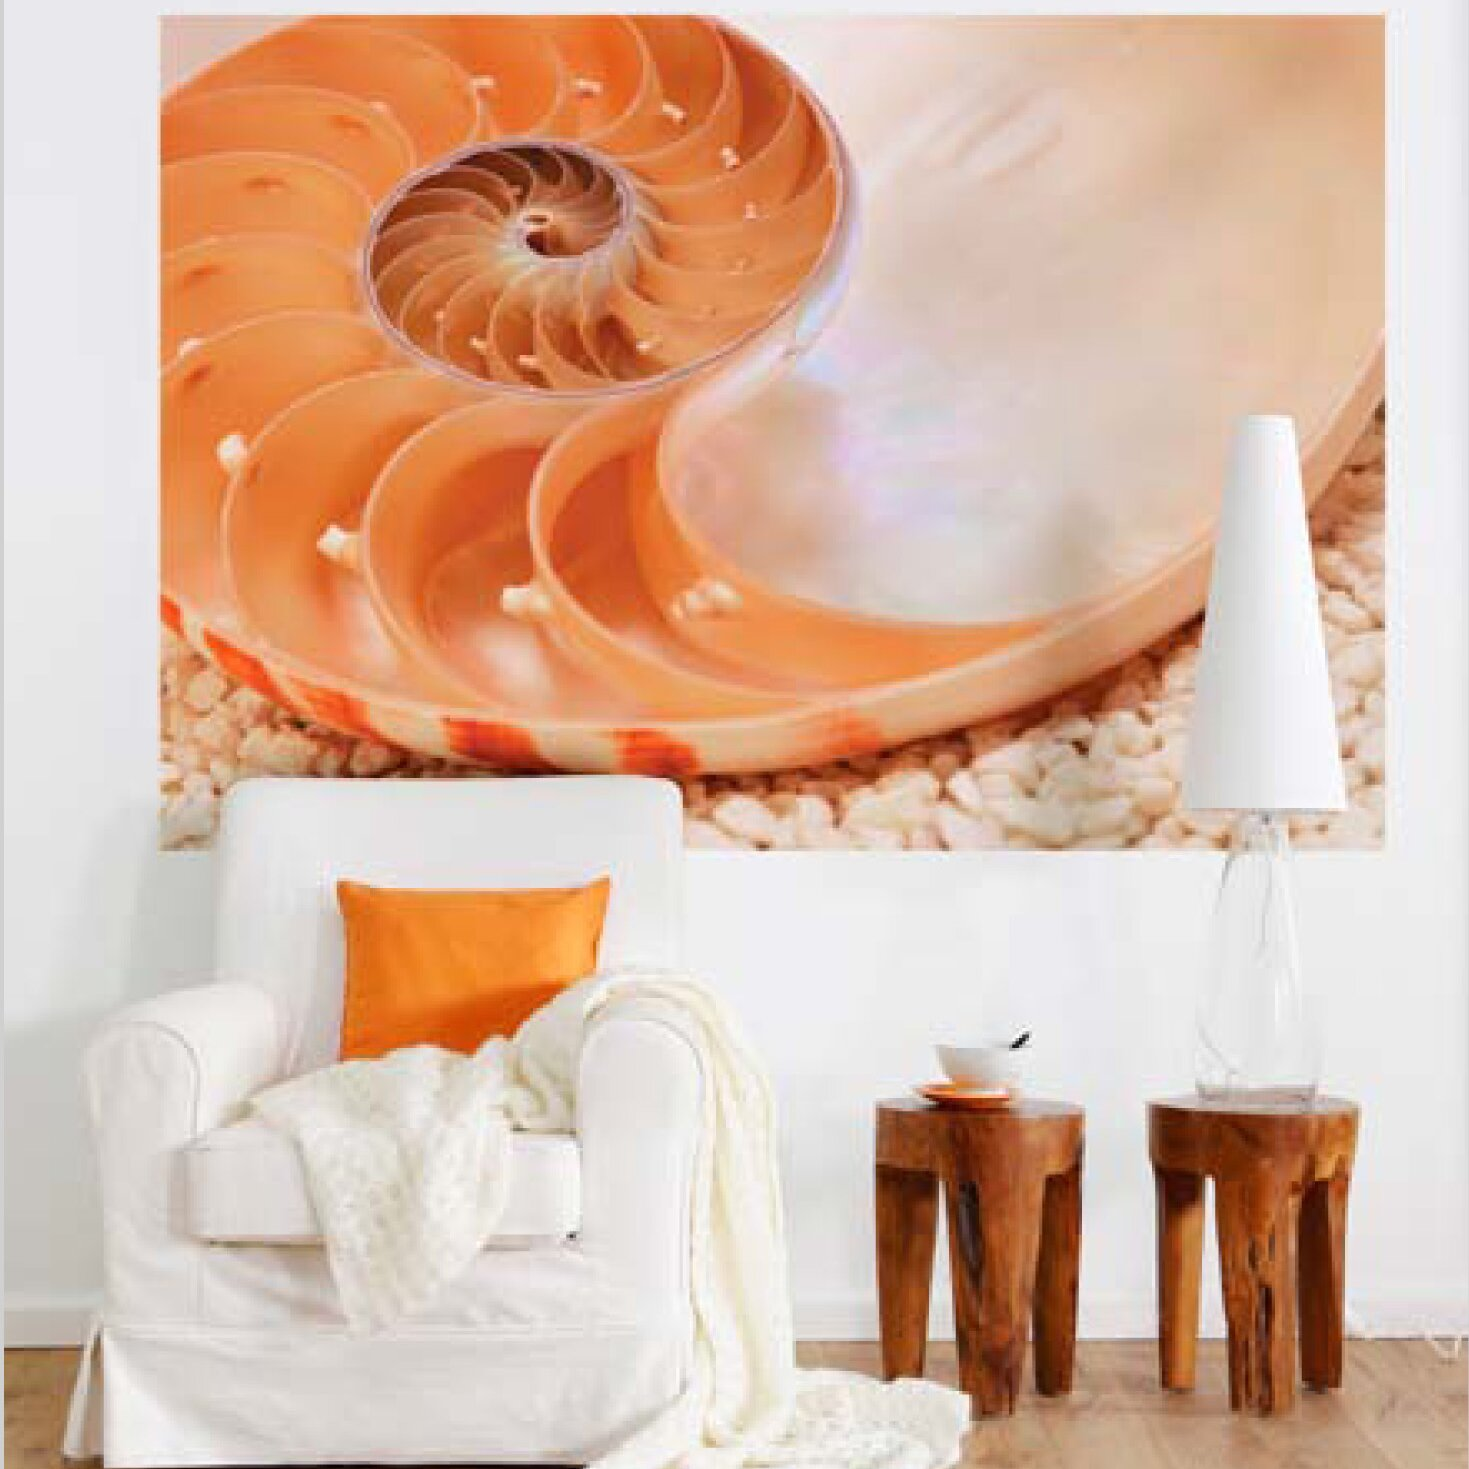 Brewster home fashions komar nautilus wall mural wayfair for Brewster home fashions komar wall mural